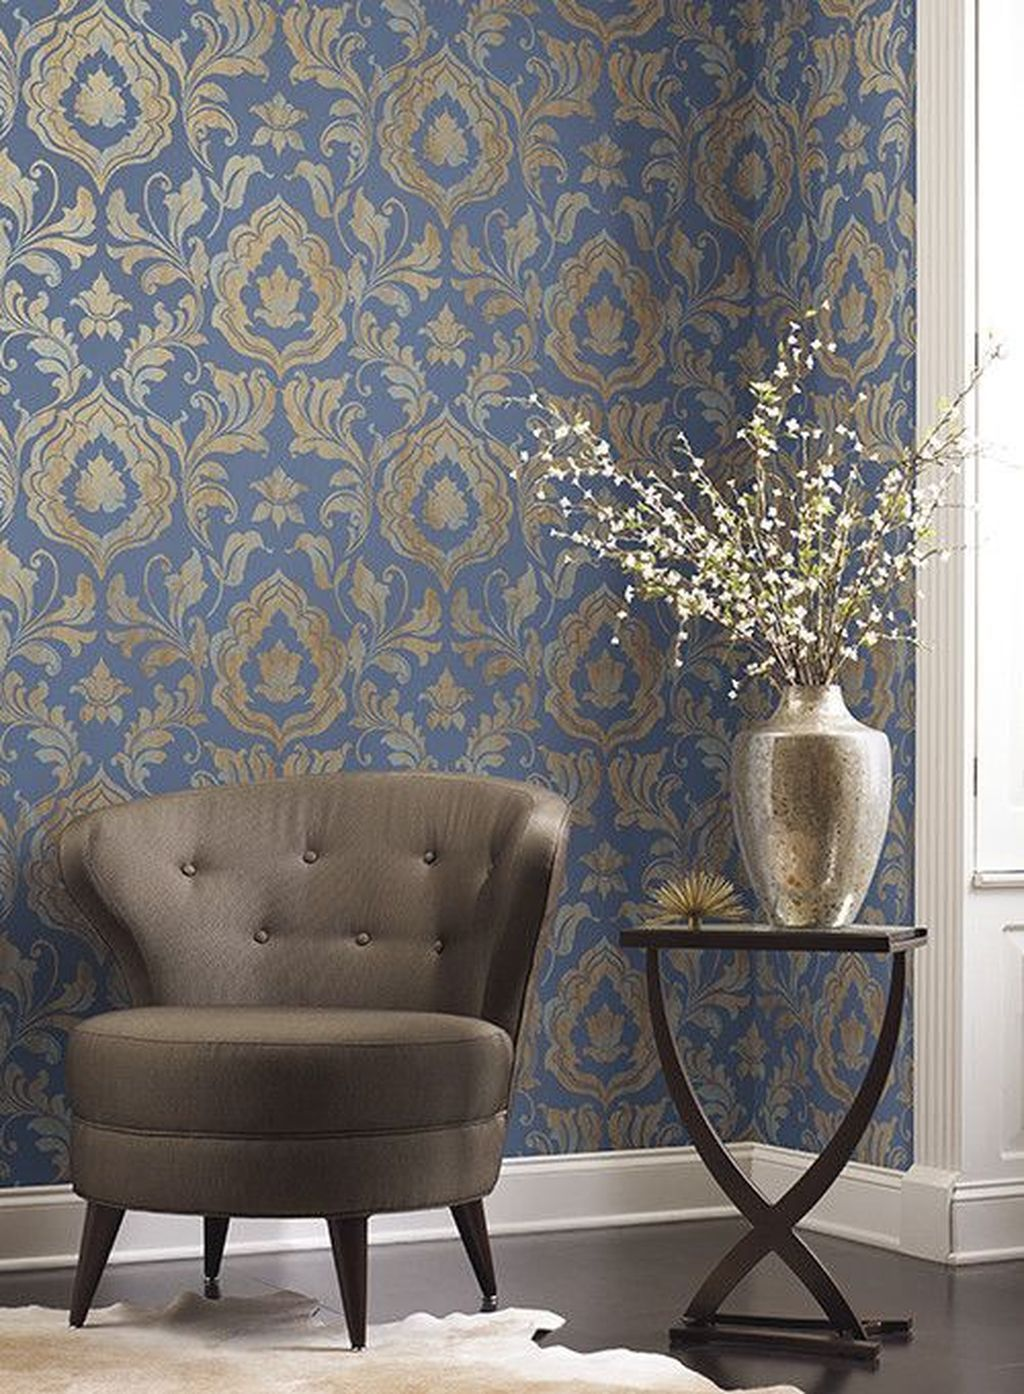 37 inspiring wall wallpaper design ideas to decorate your home